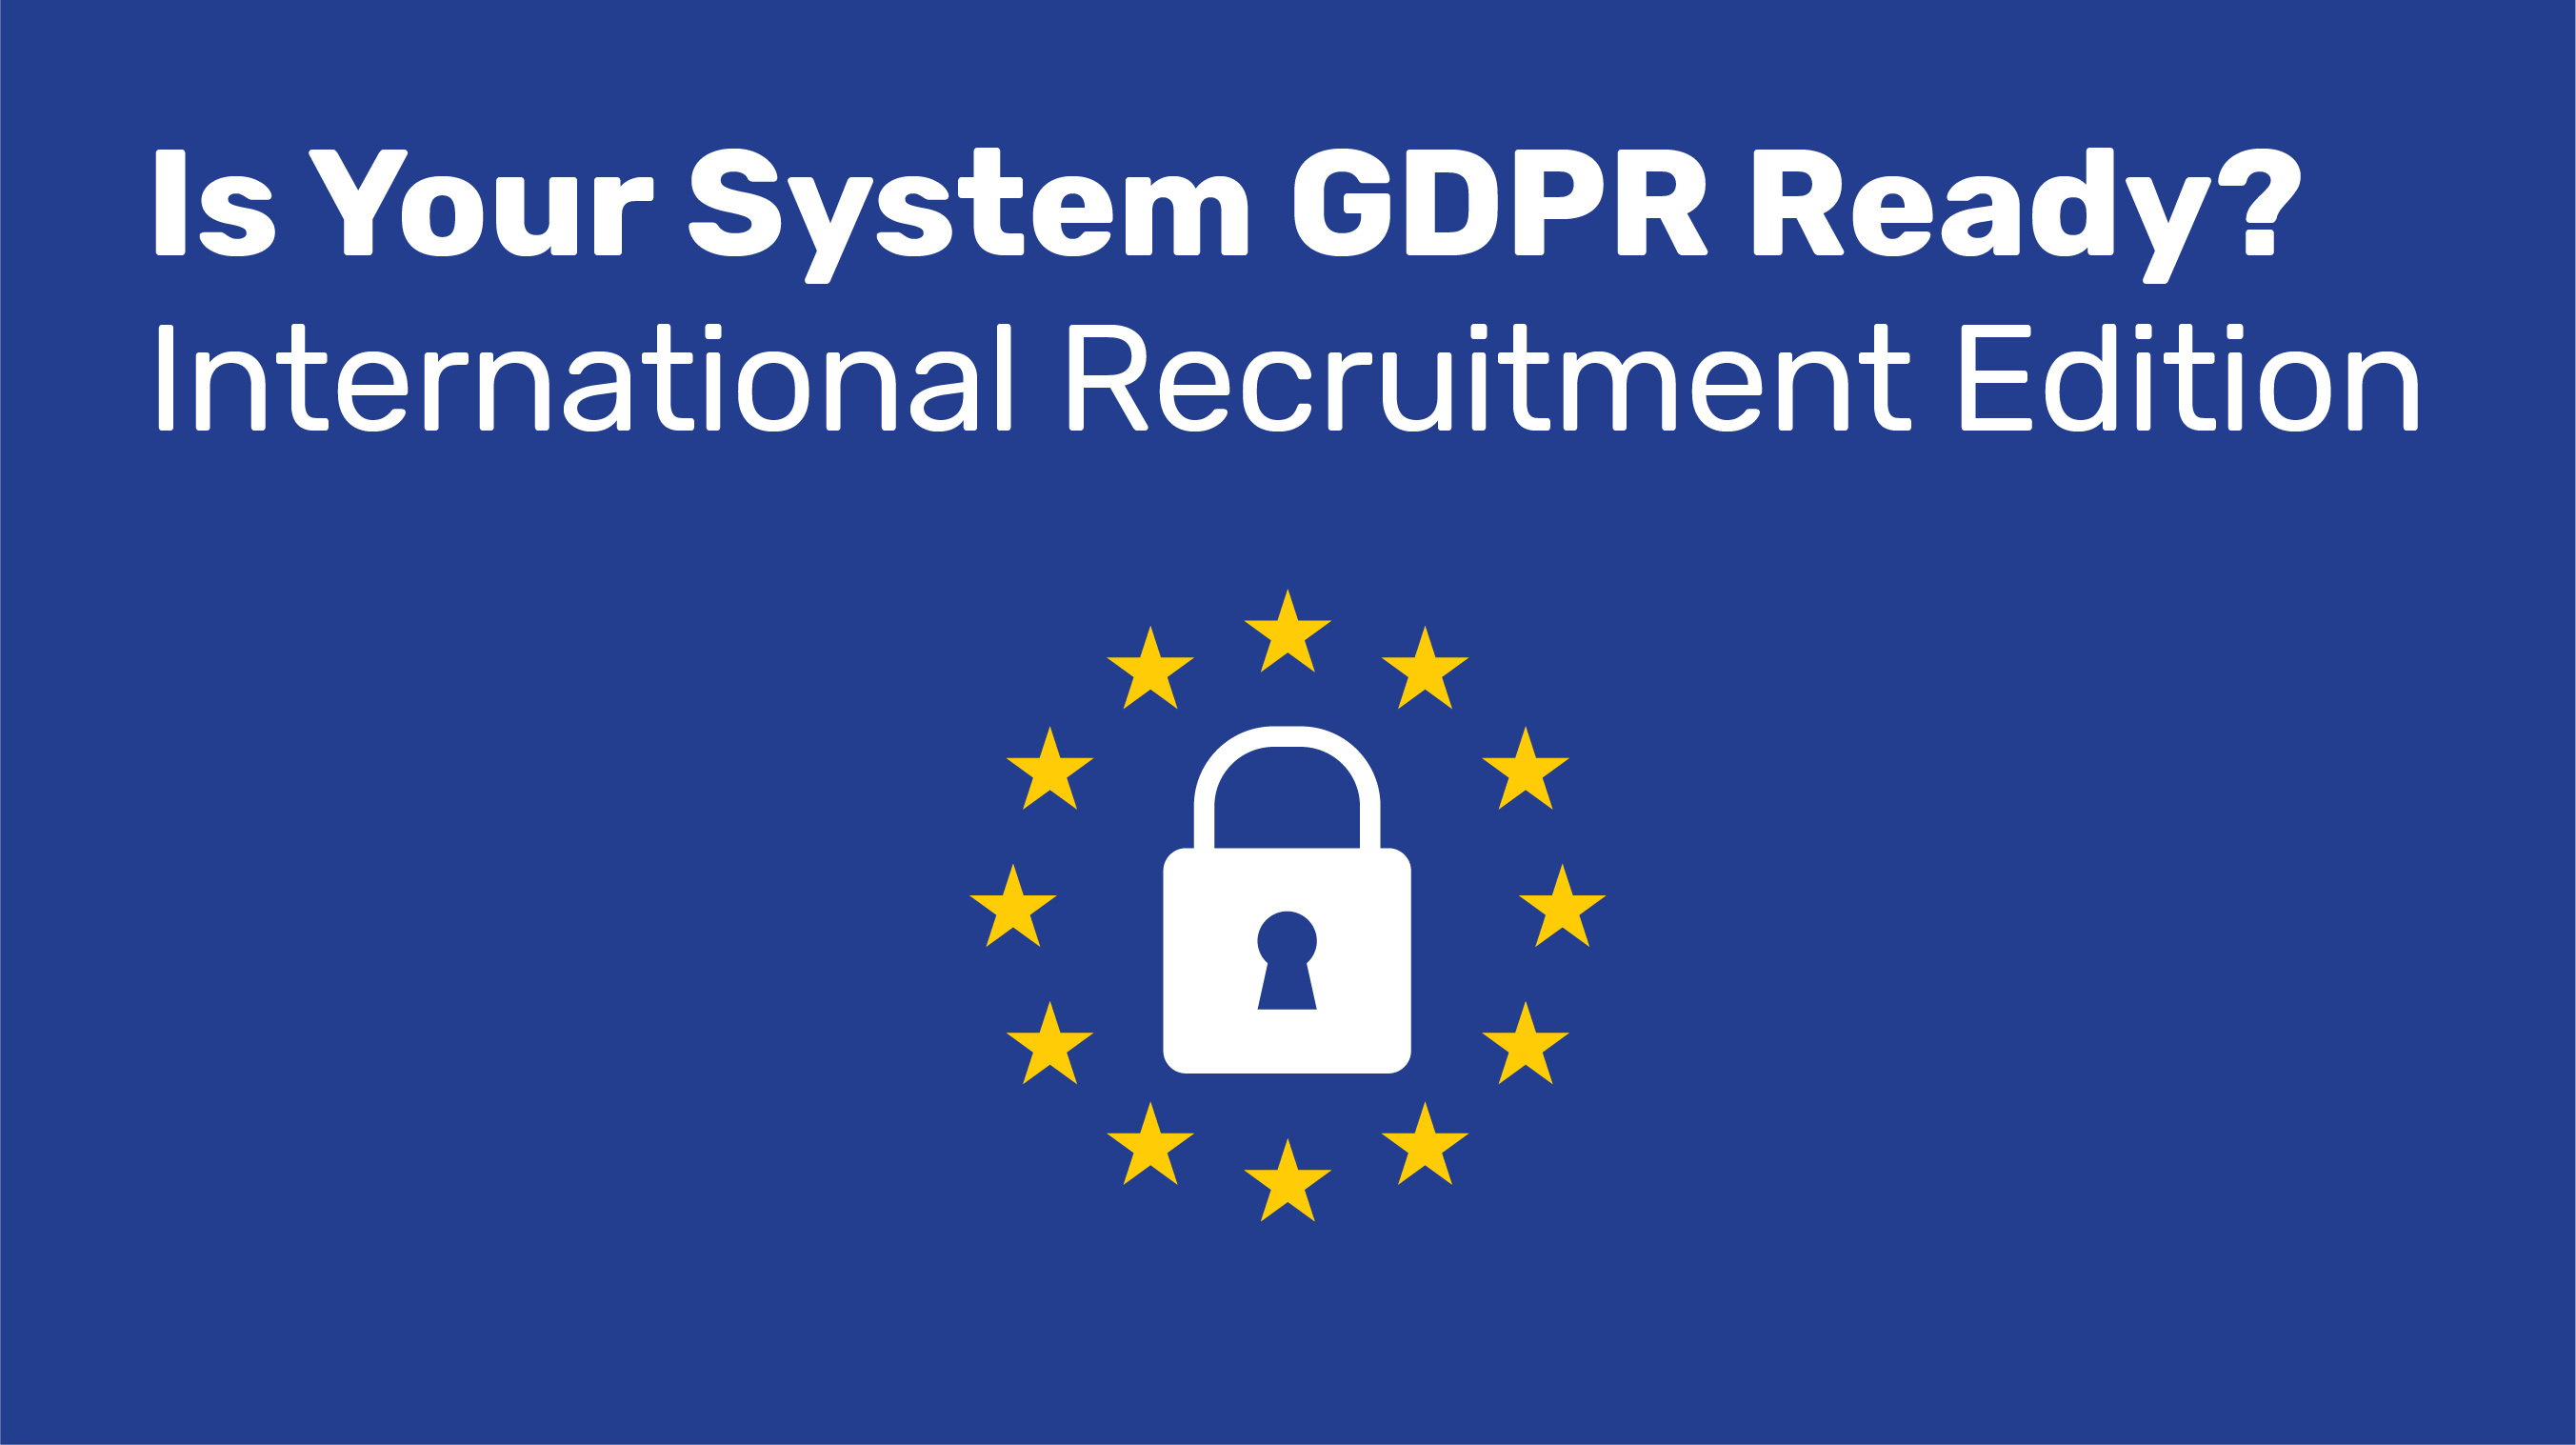 Is Your System GDPR Ready? Int'l Recruitment Edition